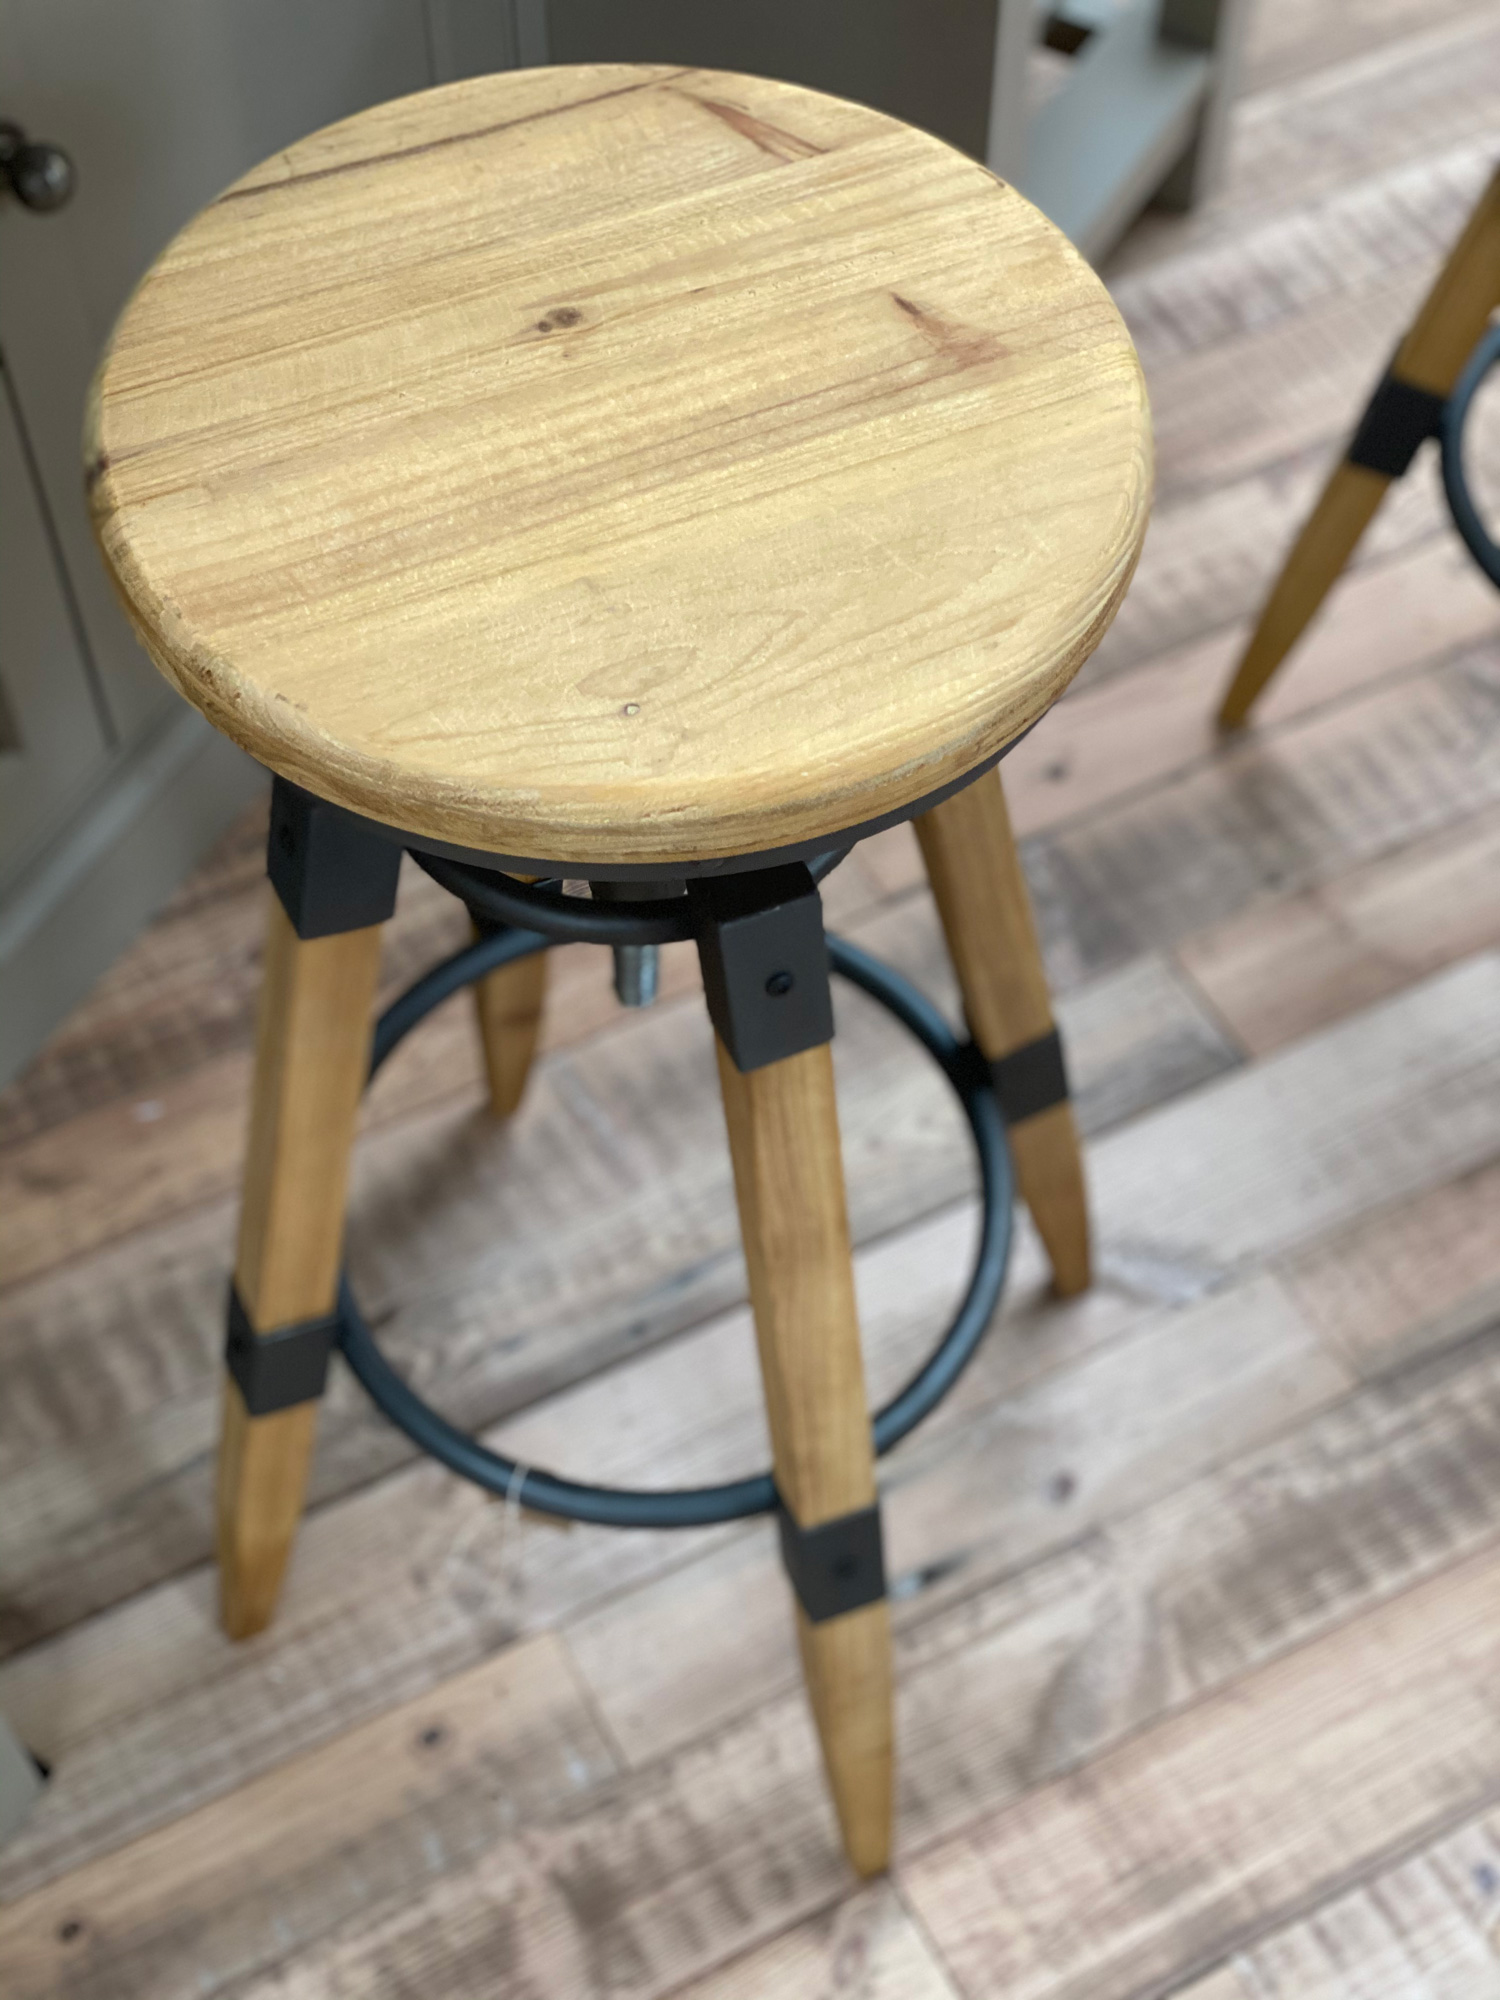 Wood seat on industrial barstool